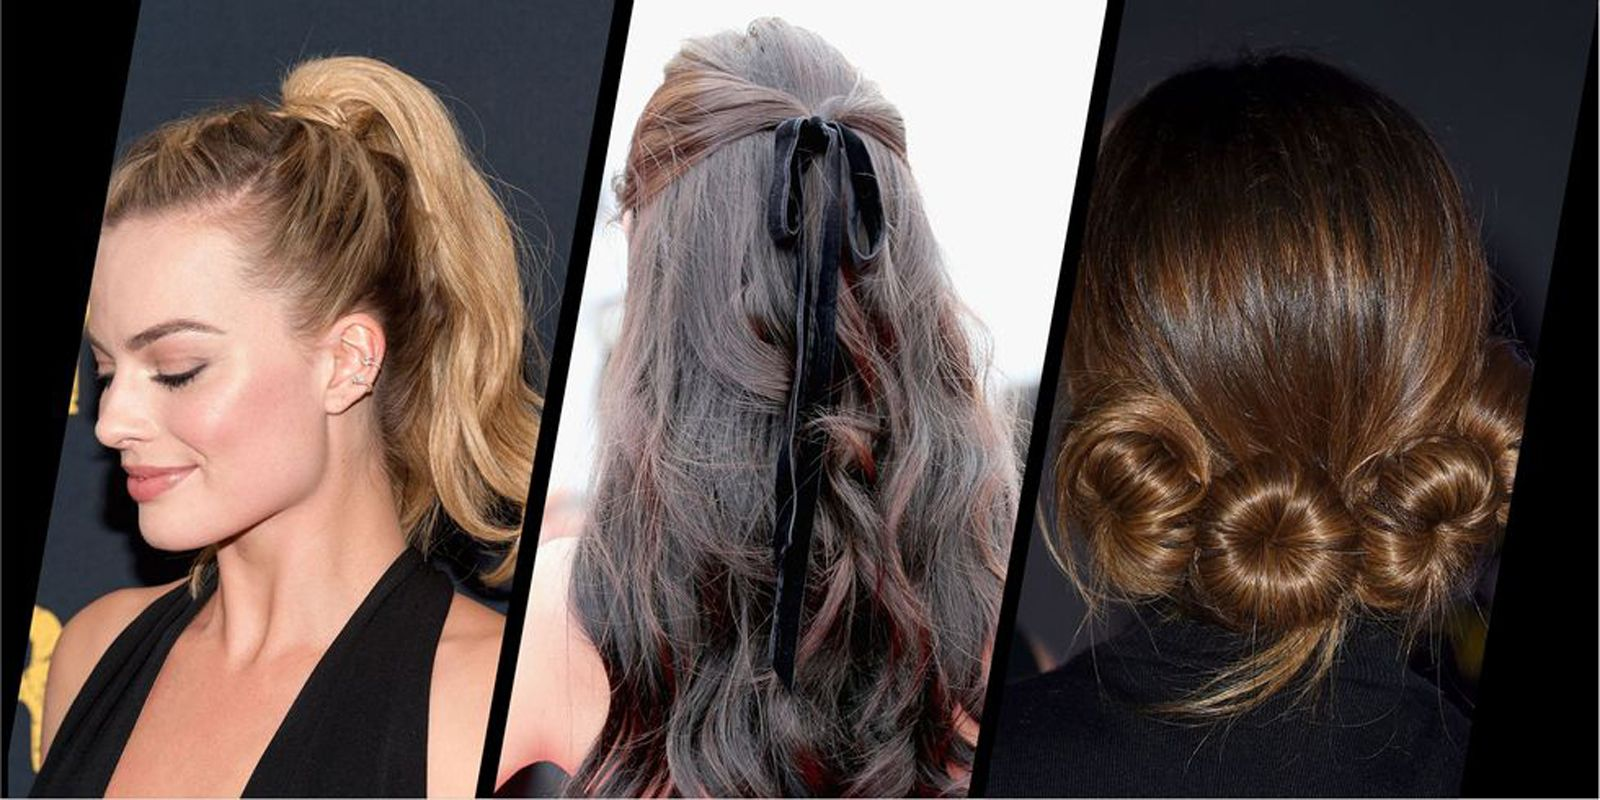 Christmas party hair ideas , Hairstyle inspiration for party